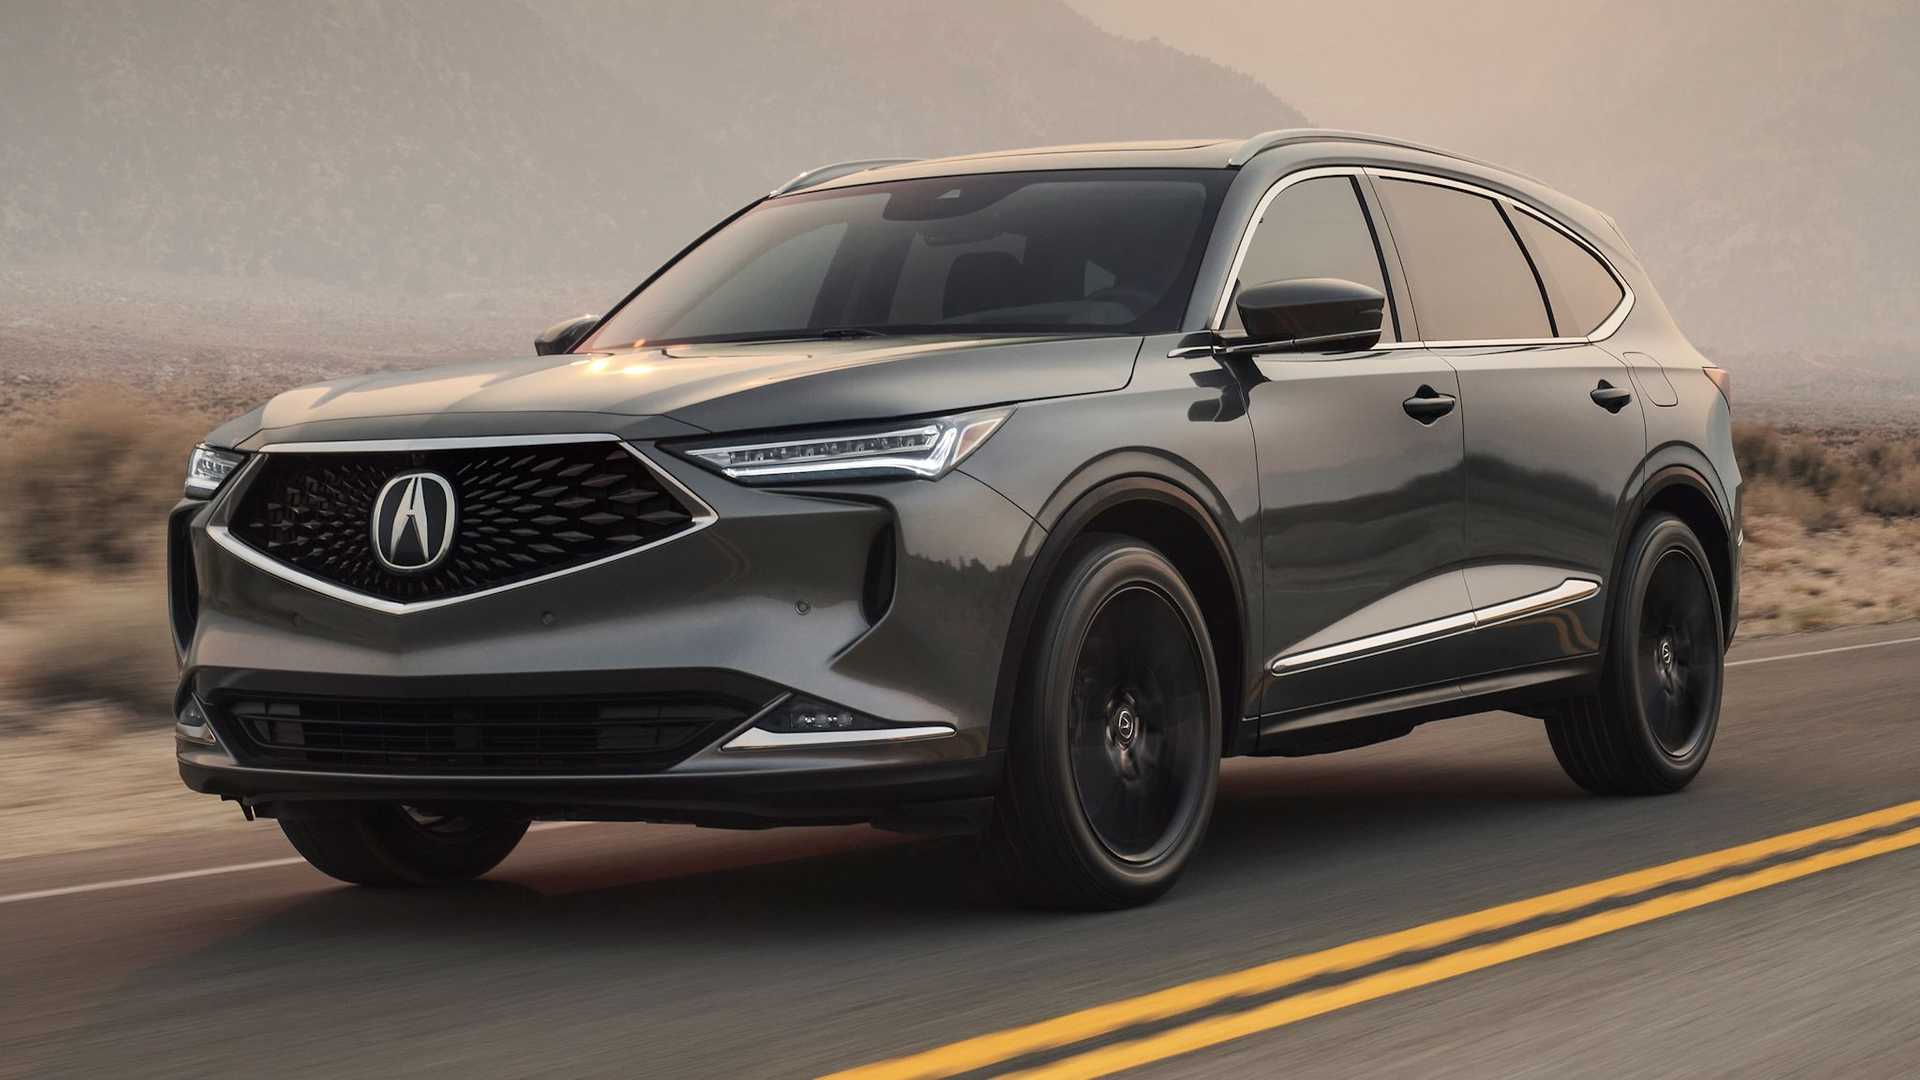 2022 acura mdx type s replaces mdx sport hybrid as